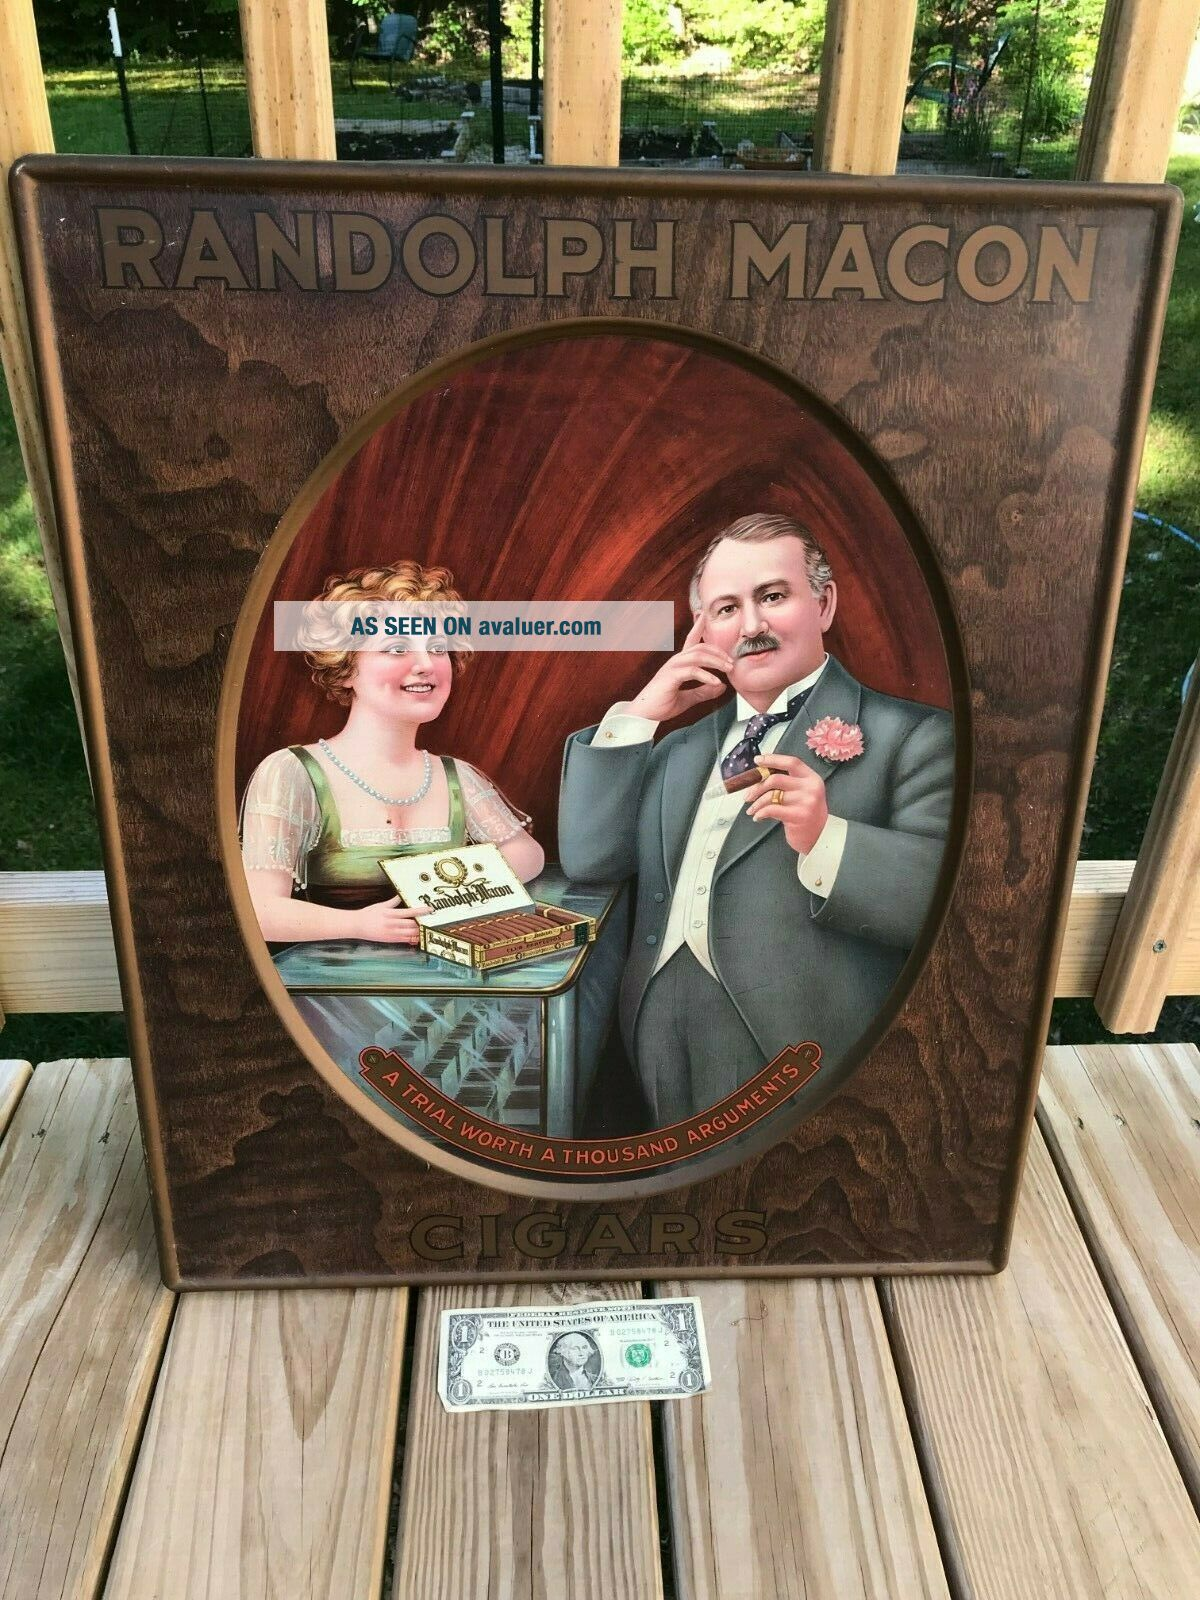 EARLY RANDOLPH MACON CIGAR TOBACCO TIN ADVERTISING SIGN OLD VINTAGE ANTIQUE